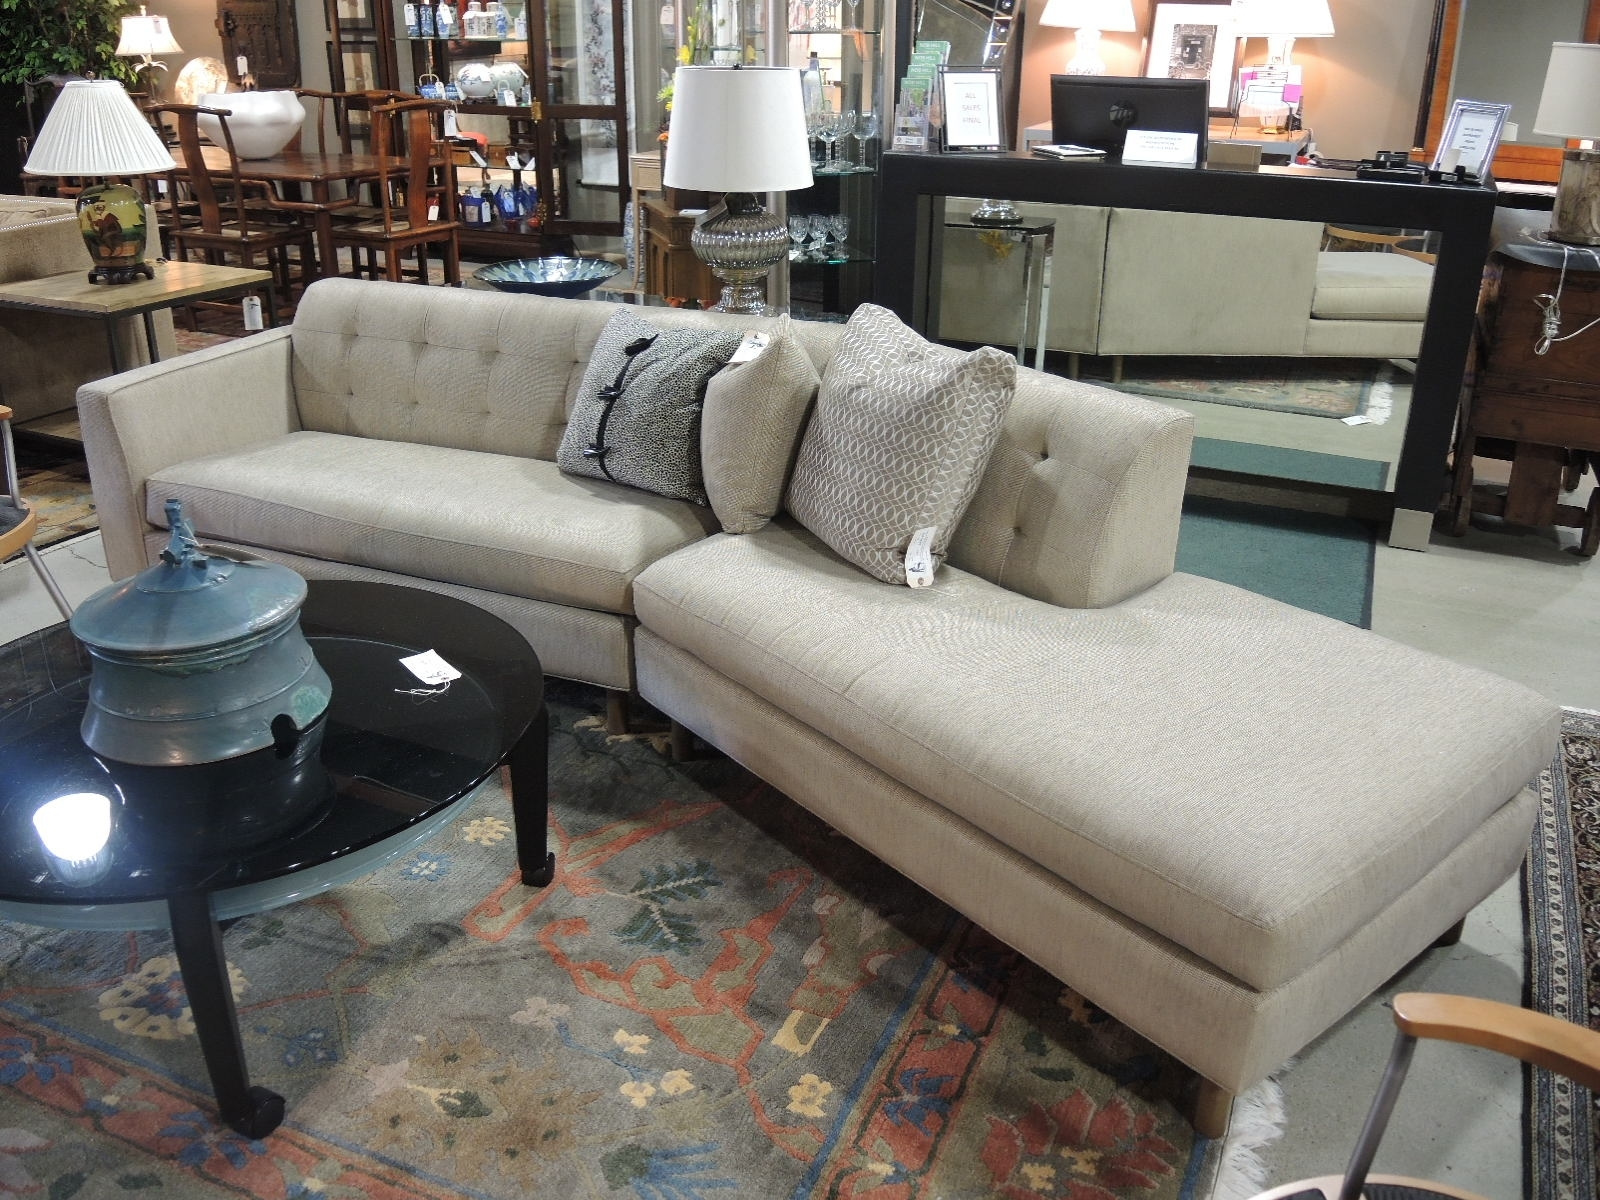 Small Sectional Sofas Raleigh Nc | Catosfera Regarding Raleigh Nc Sectional Sofas (Gallery 9 of 10)